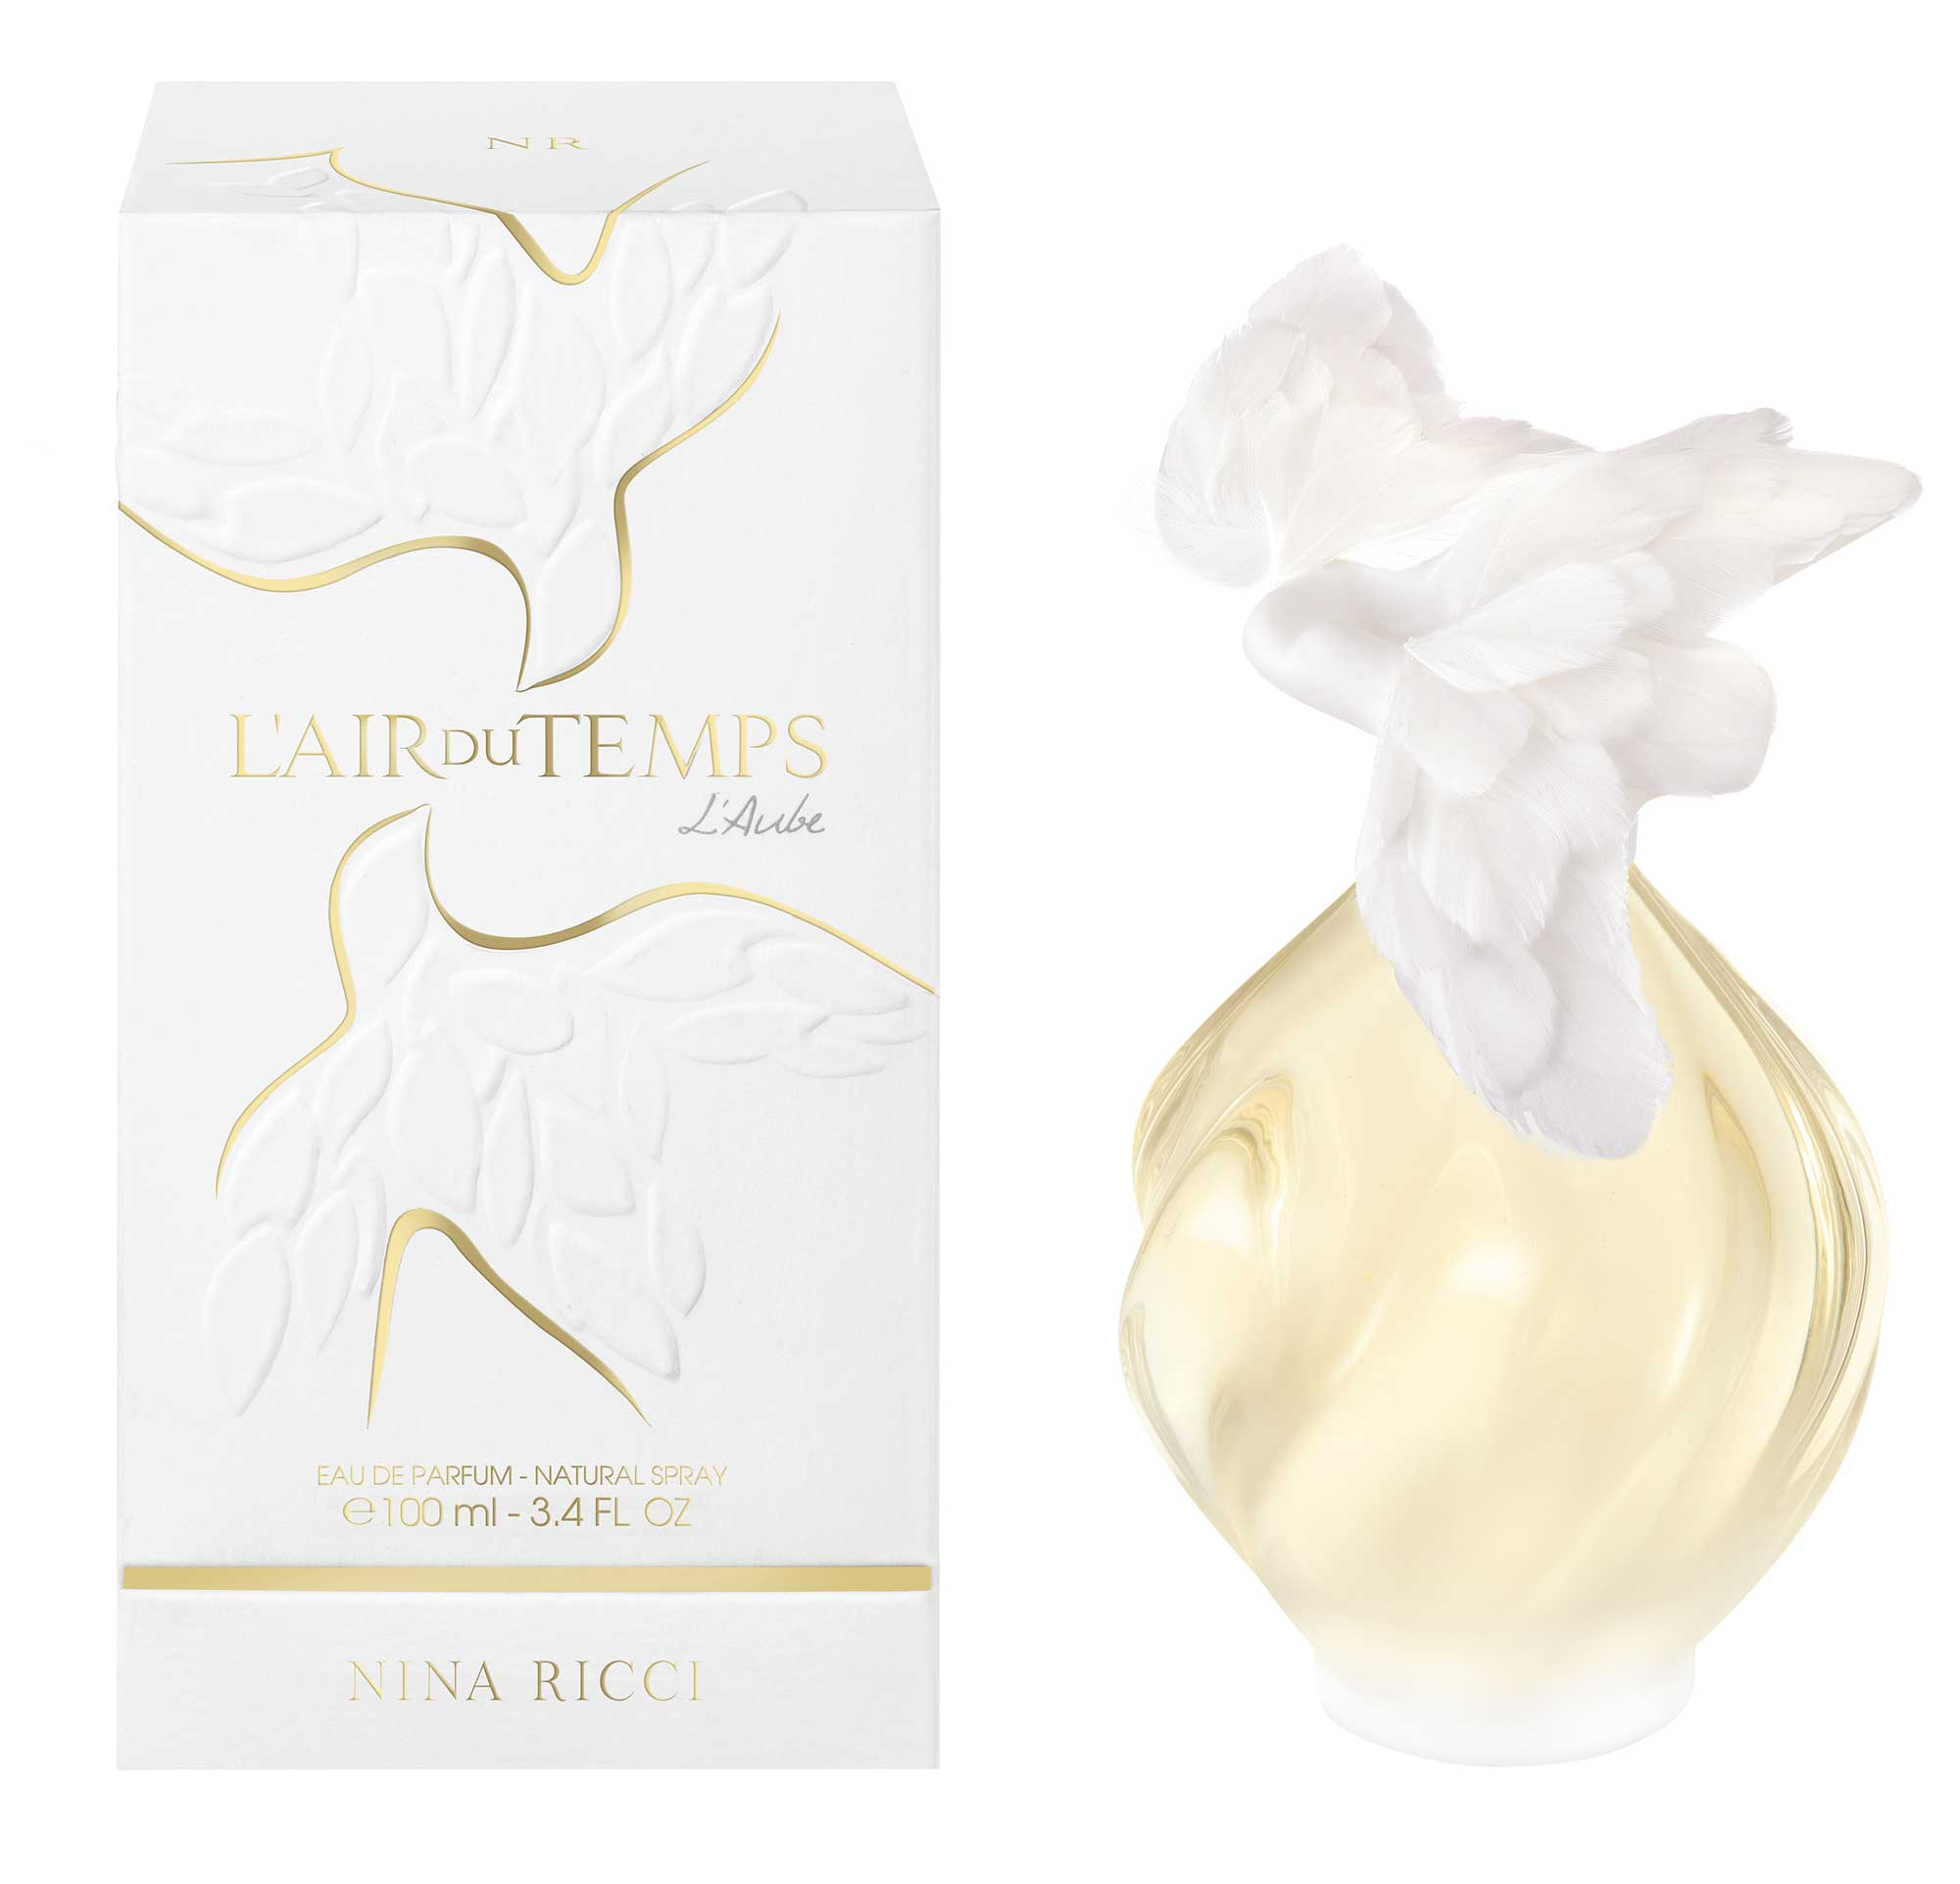 l 39 air du temps l 39 aube nina ricci perfume a new fragrance. Black Bedroom Furniture Sets. Home Design Ideas